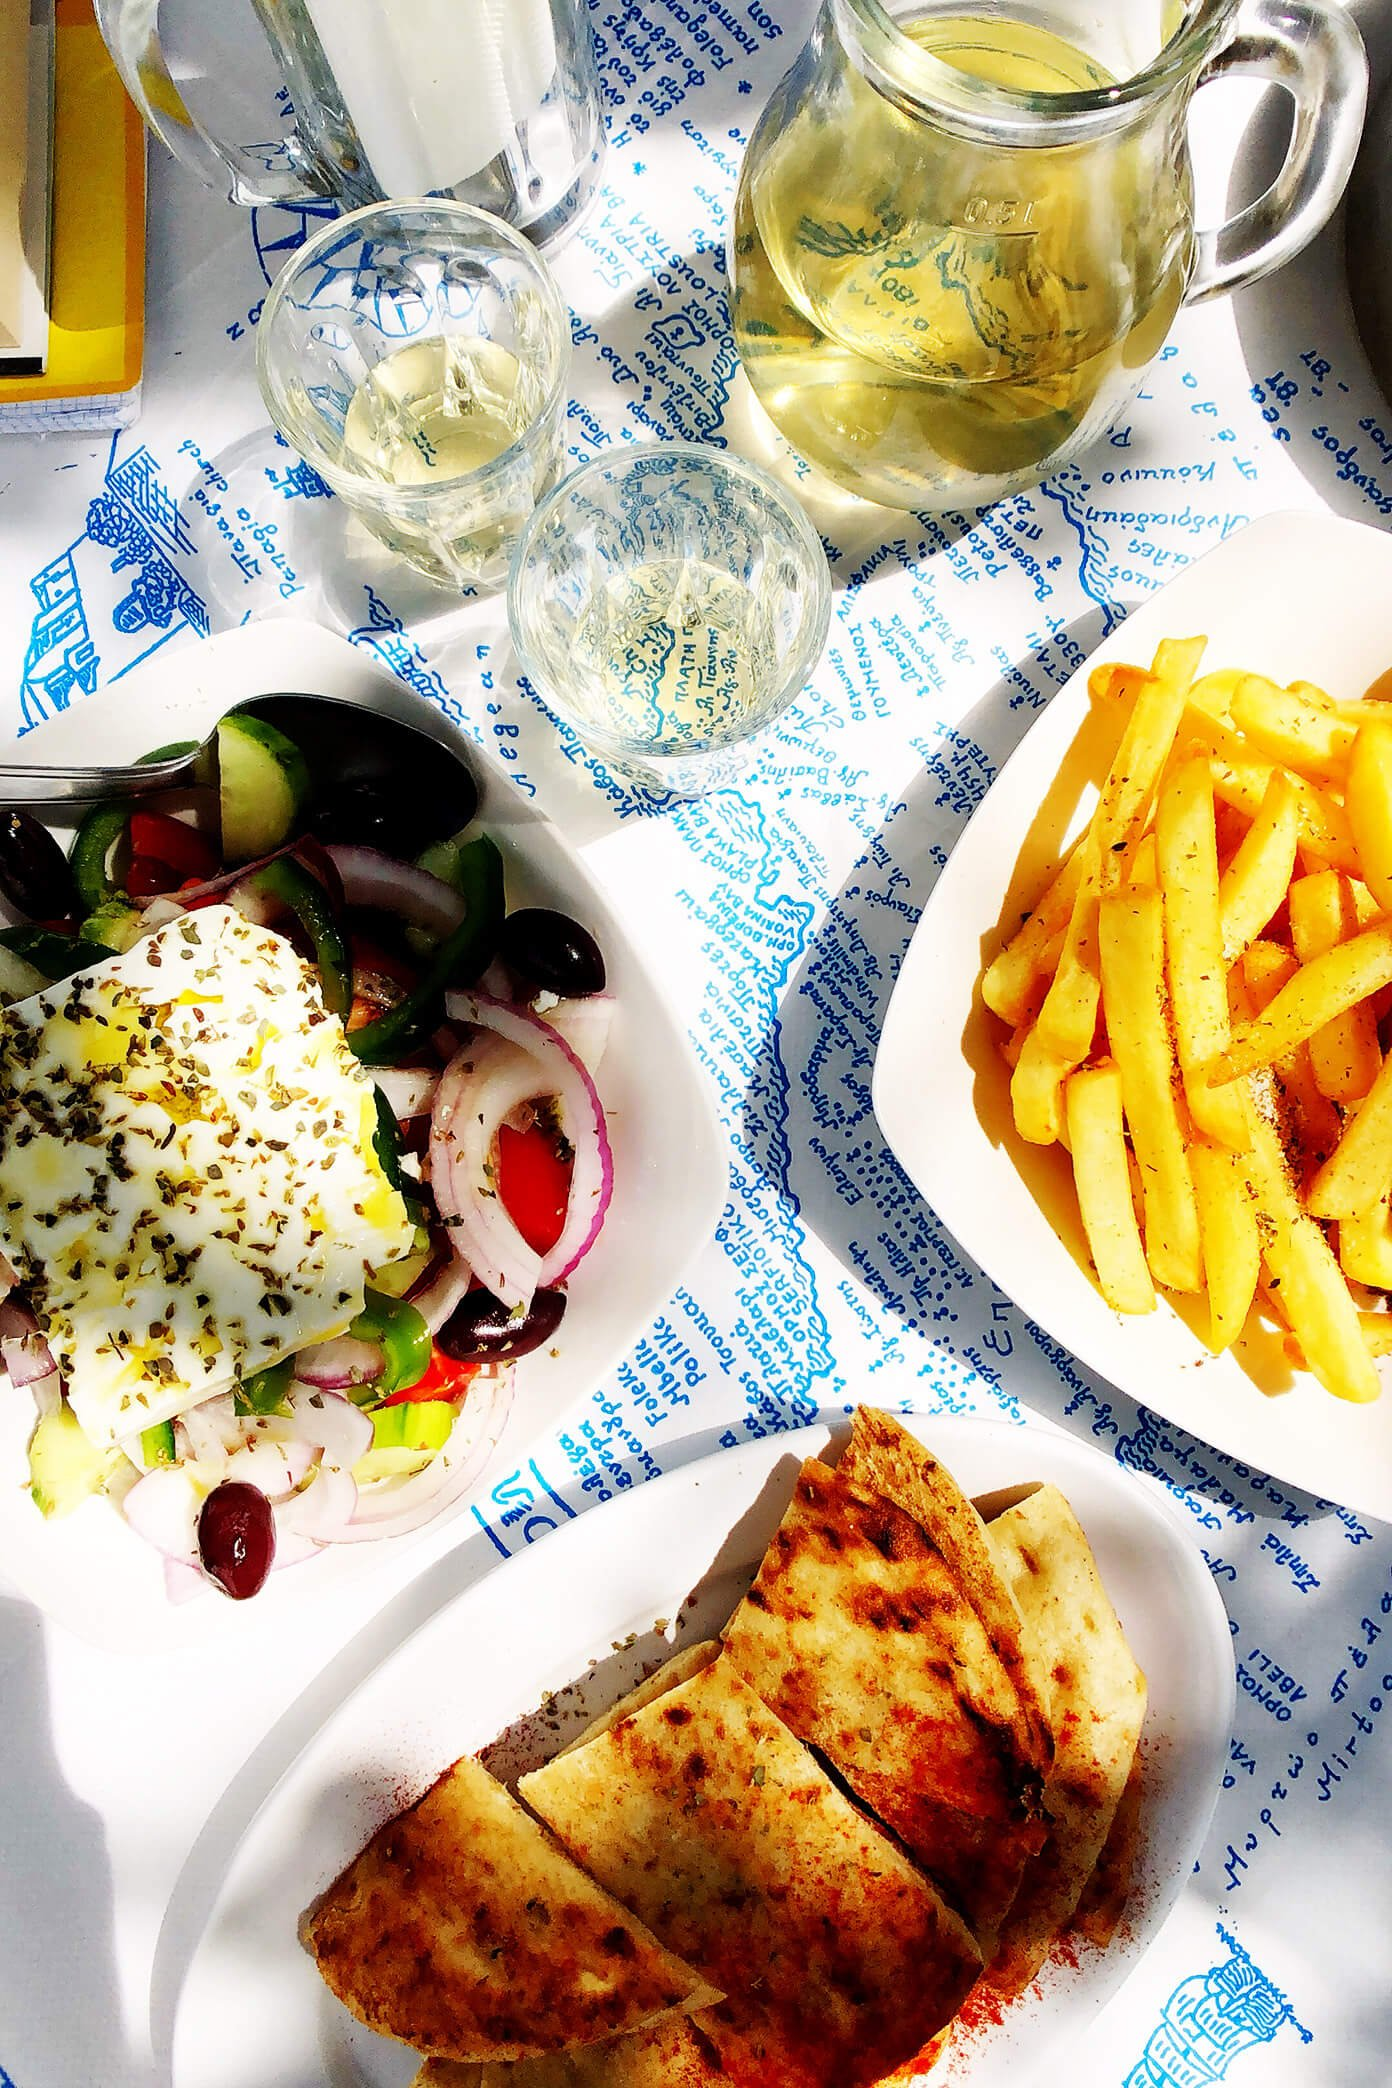 Greek Salad, Pita, Fries and Wine at Souvlaki Club Restaurant in Folegandros, Greece